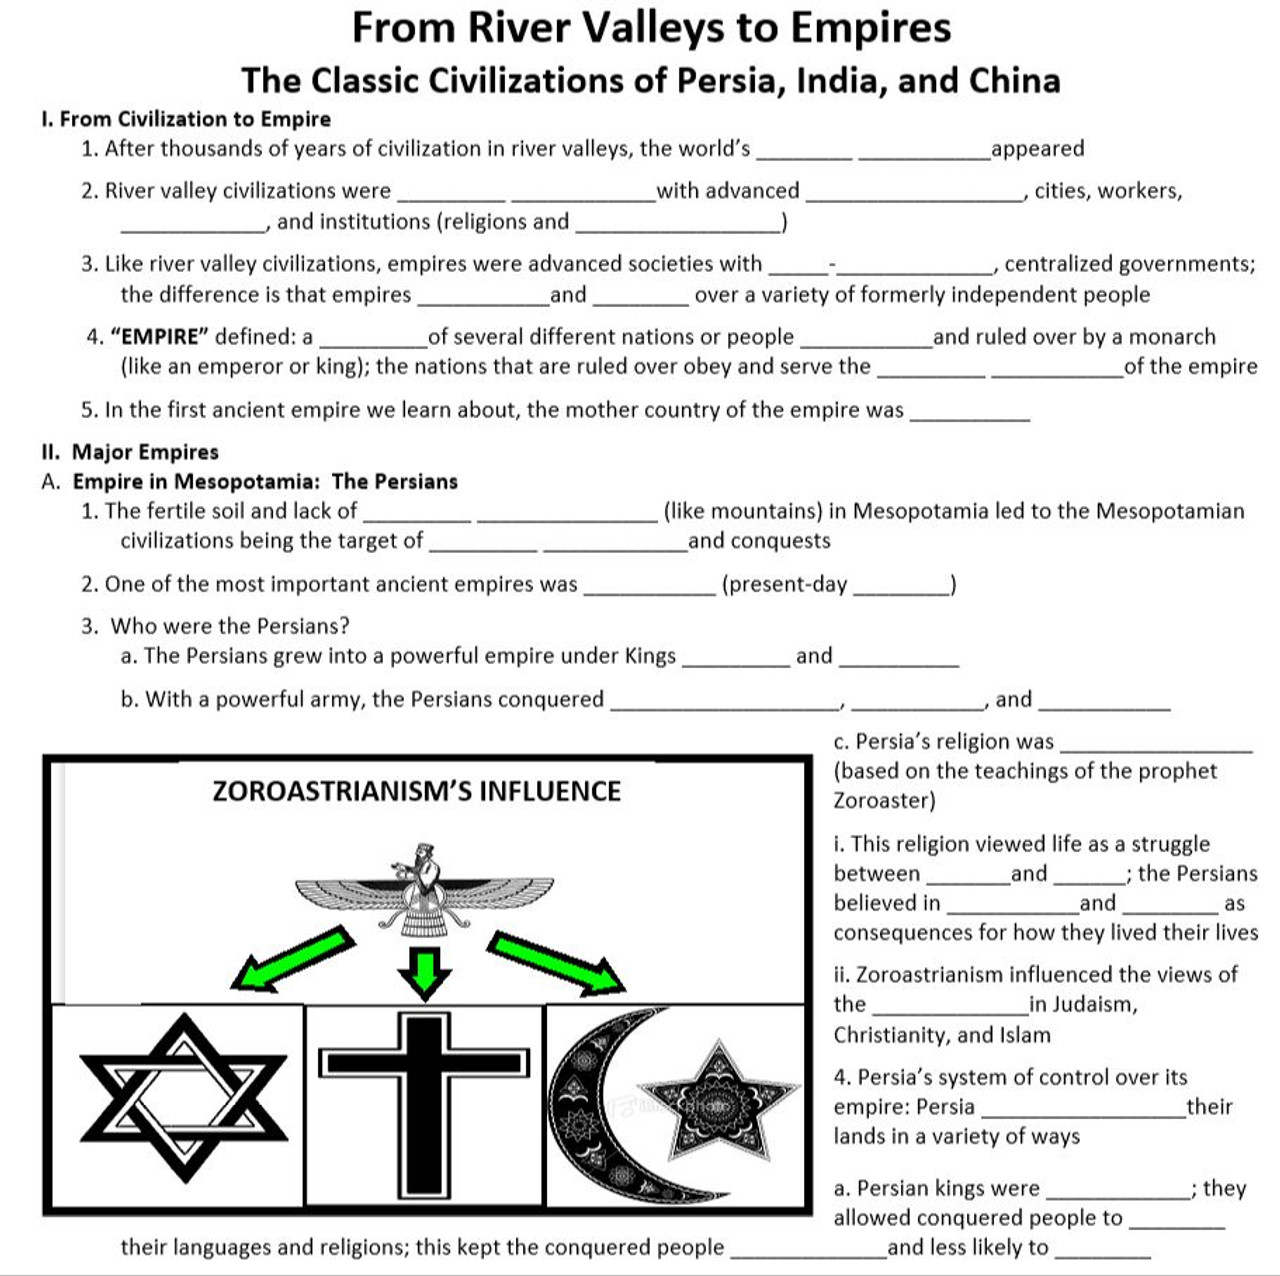 Civilizations to Empires PPT and Guided Notes